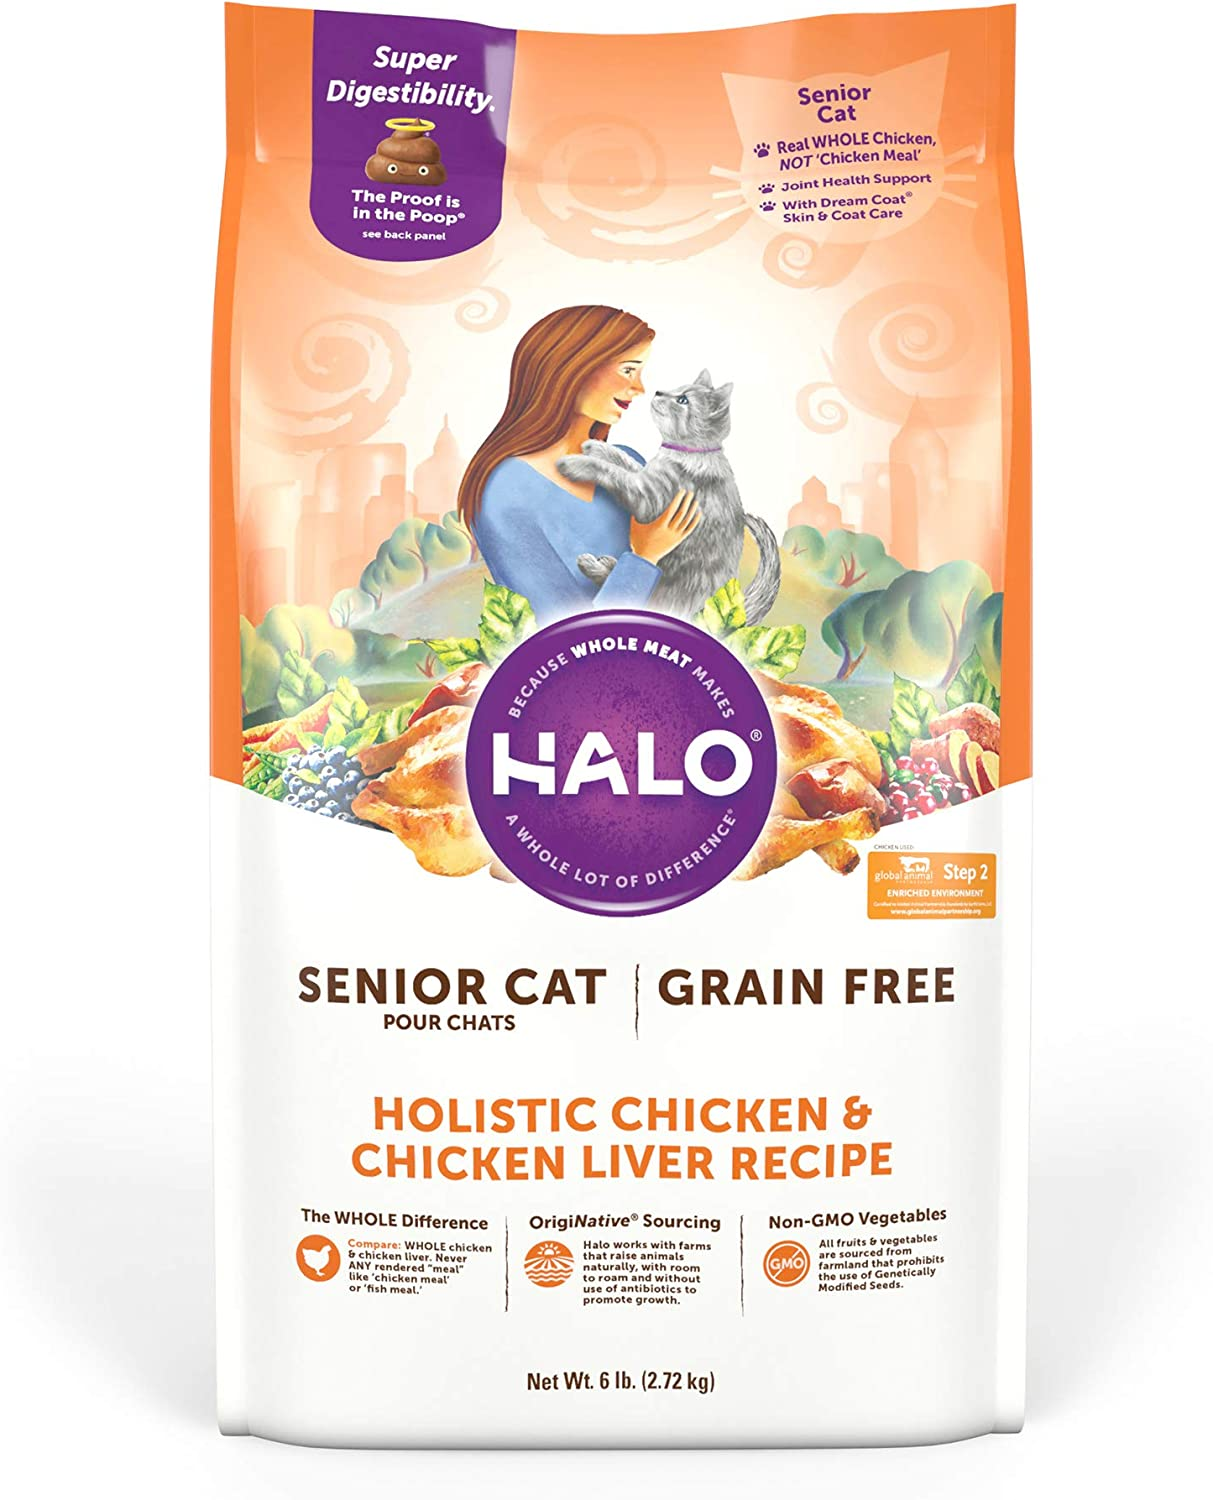 Halo Grain Free Natural Dry Cat Food - Senior Cat Recipe - Premium and Holistic Chicken & Chicken Liver - 6 Pound Bag - Sustainably Sourced Adult Cat Food -Real Whole Meat, Highly Digestible, Non-GMO